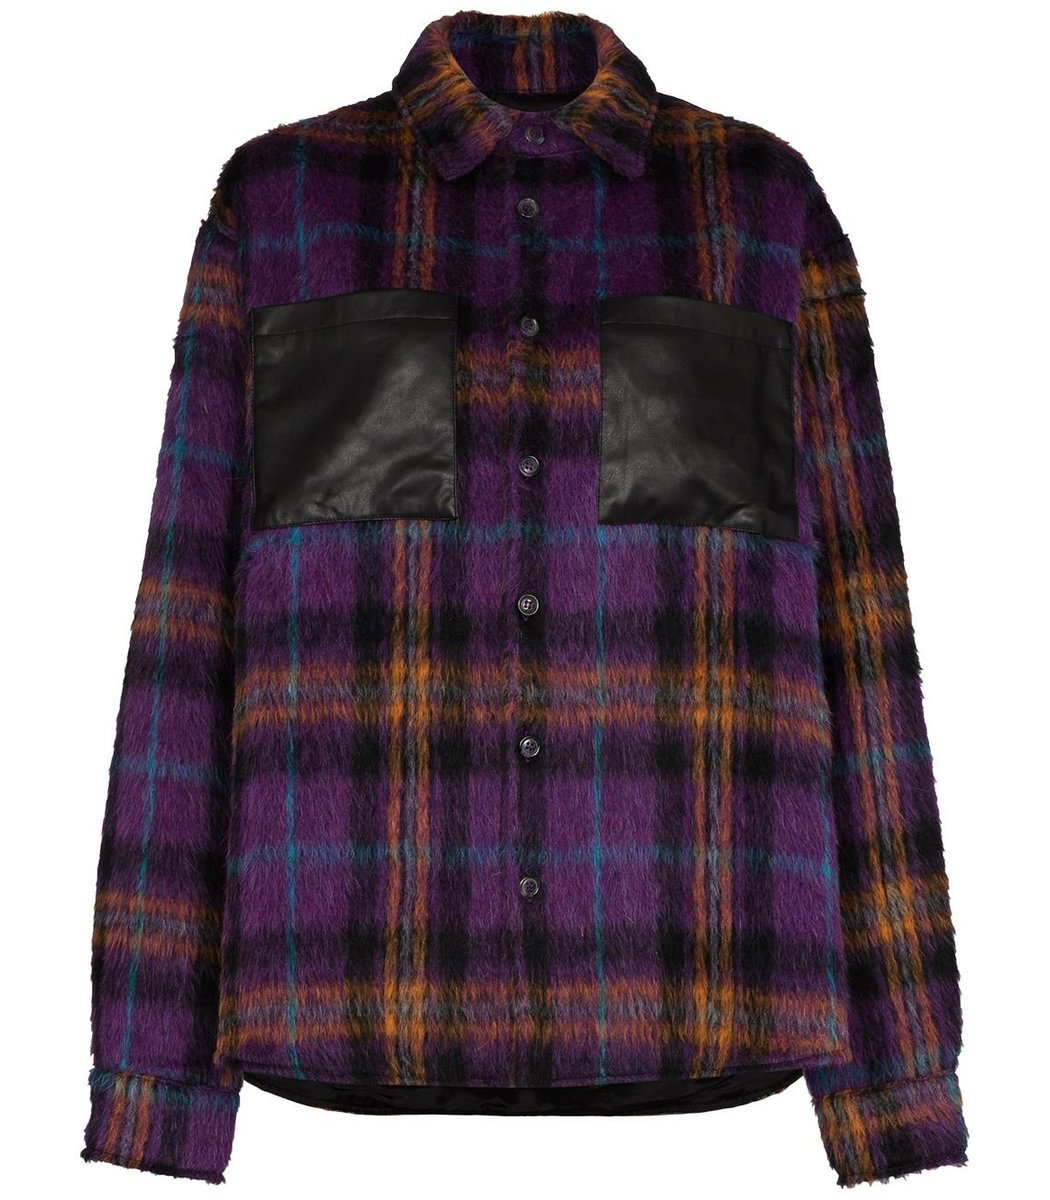 Natasha Zinko Plaid Print Shirt Jacket